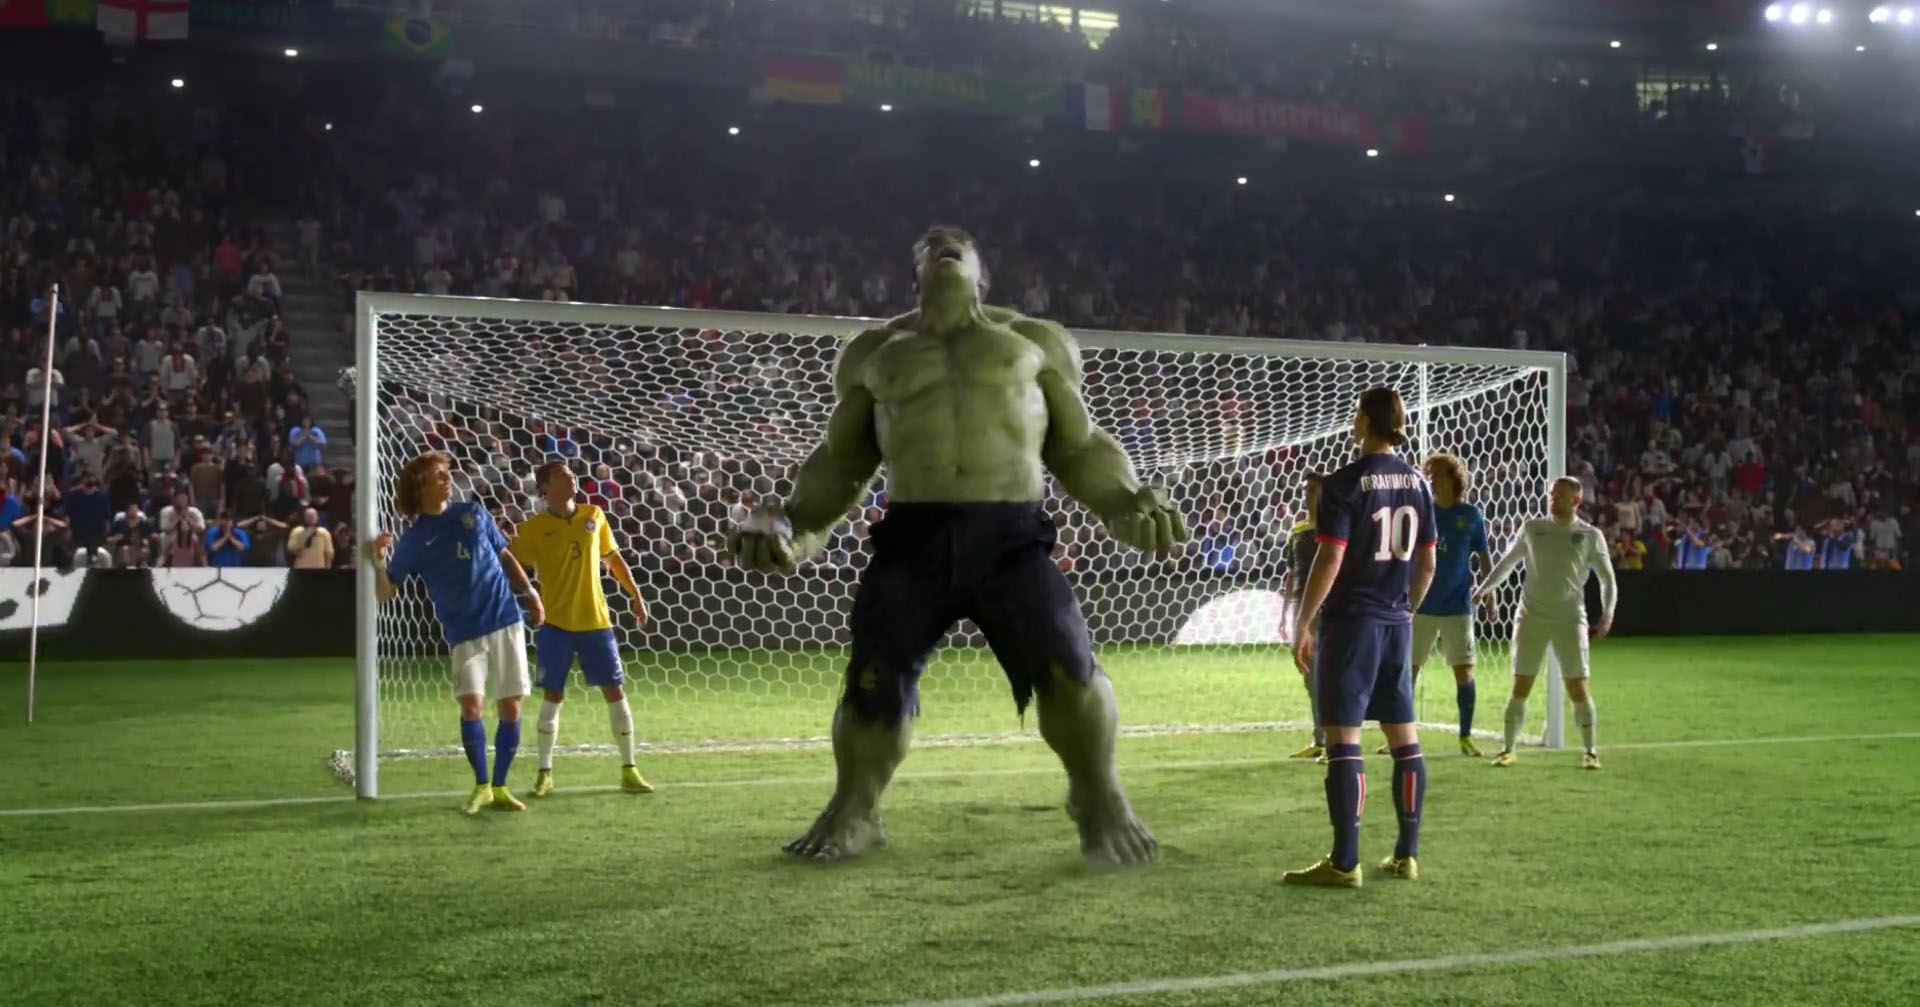 The Hulk in the new Nike video ad, next to Ibrahimovic, Thiago Silva and David Luiz